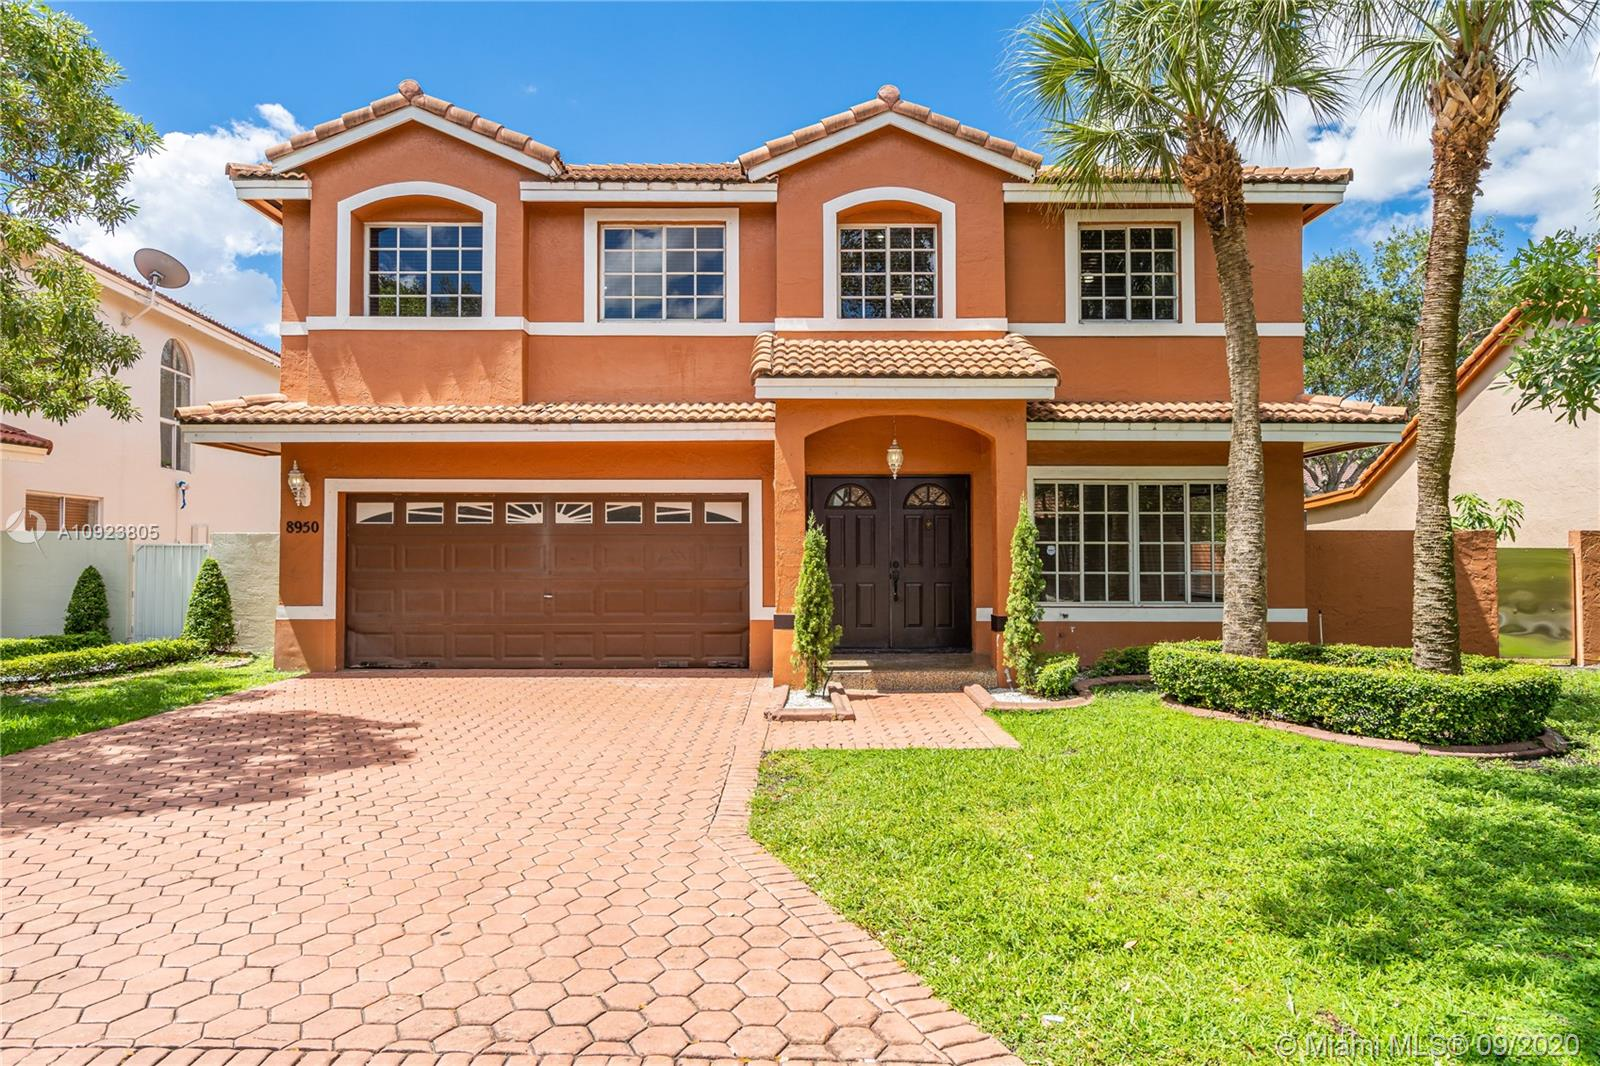 Details for 8950 189th Ter, Hialeah, FL 33018